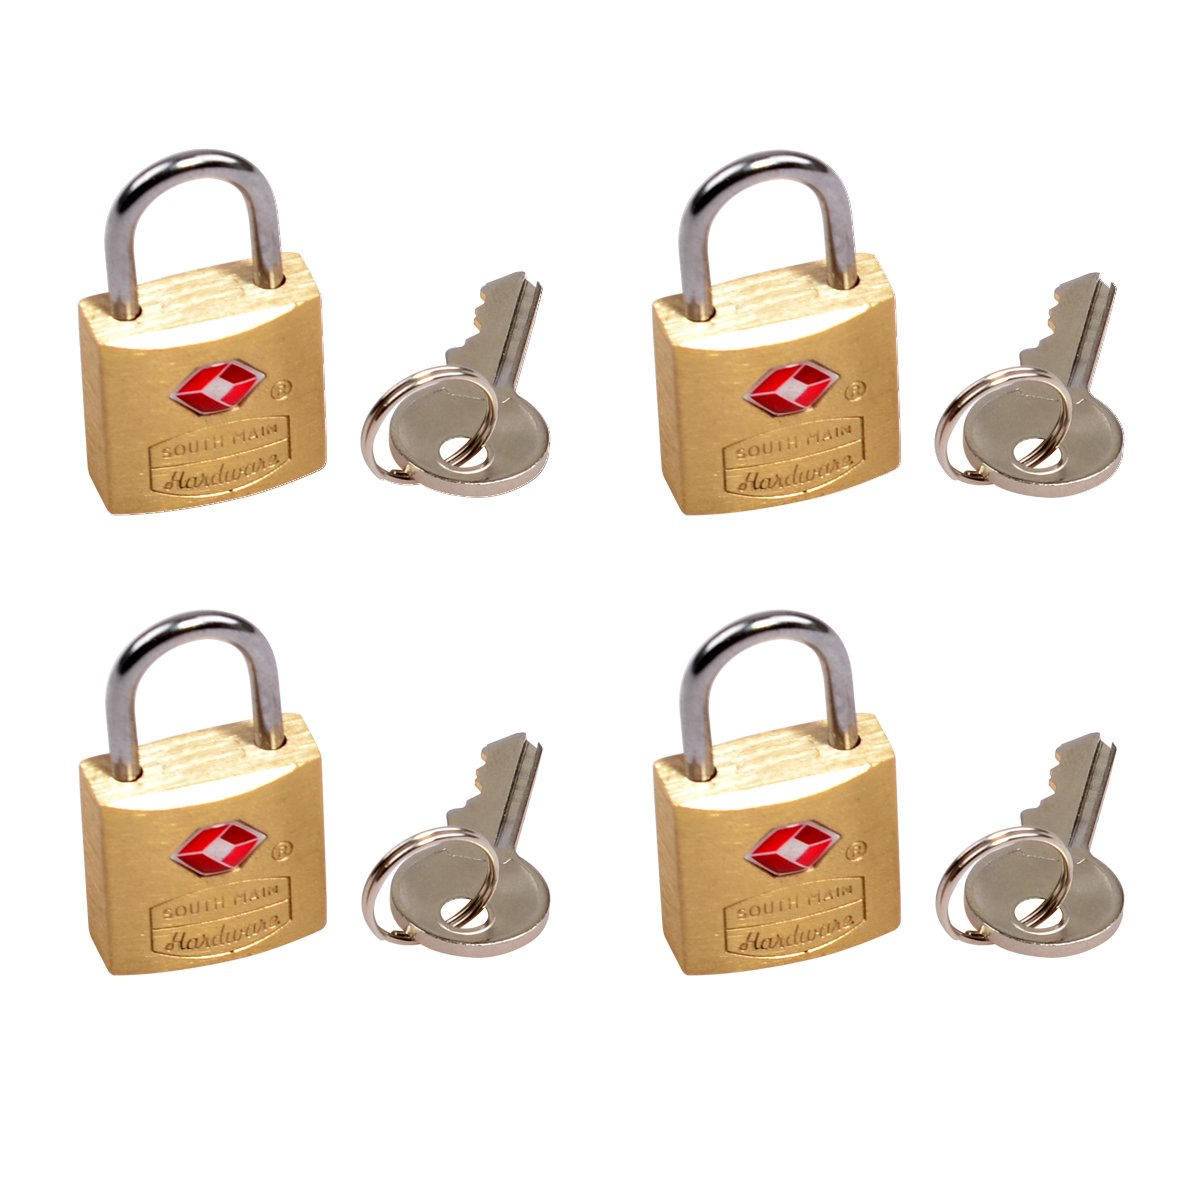 South Main Hardware 810106 TSA Approved Luggage Lock (4 Pack), Solid Brass HaoPingAn